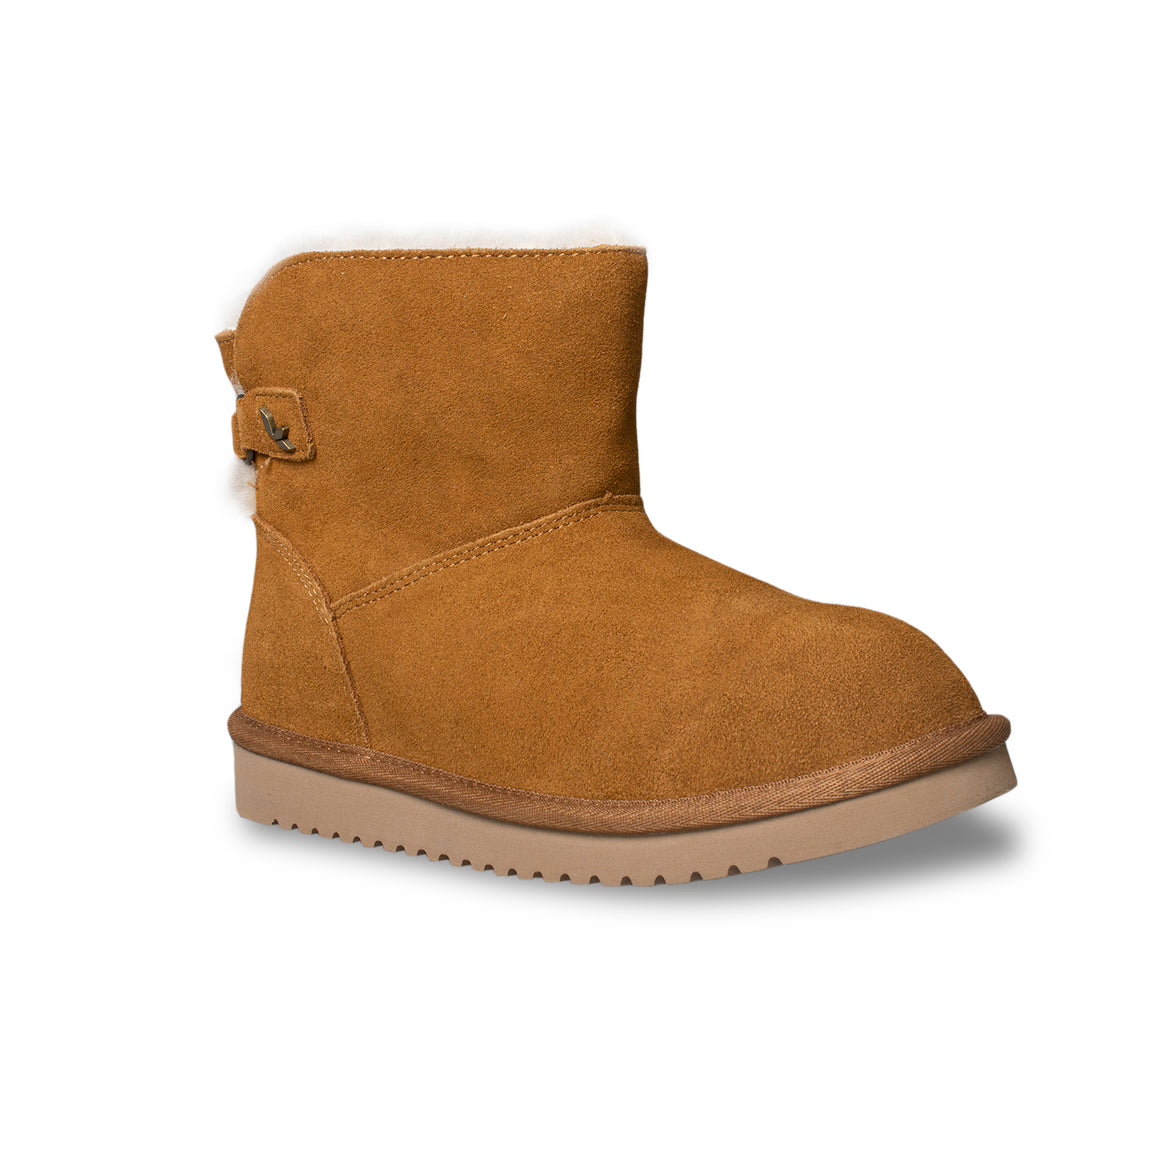 Koolaburra By UGG Jaelyn Mini Chestnut Boots - Women's